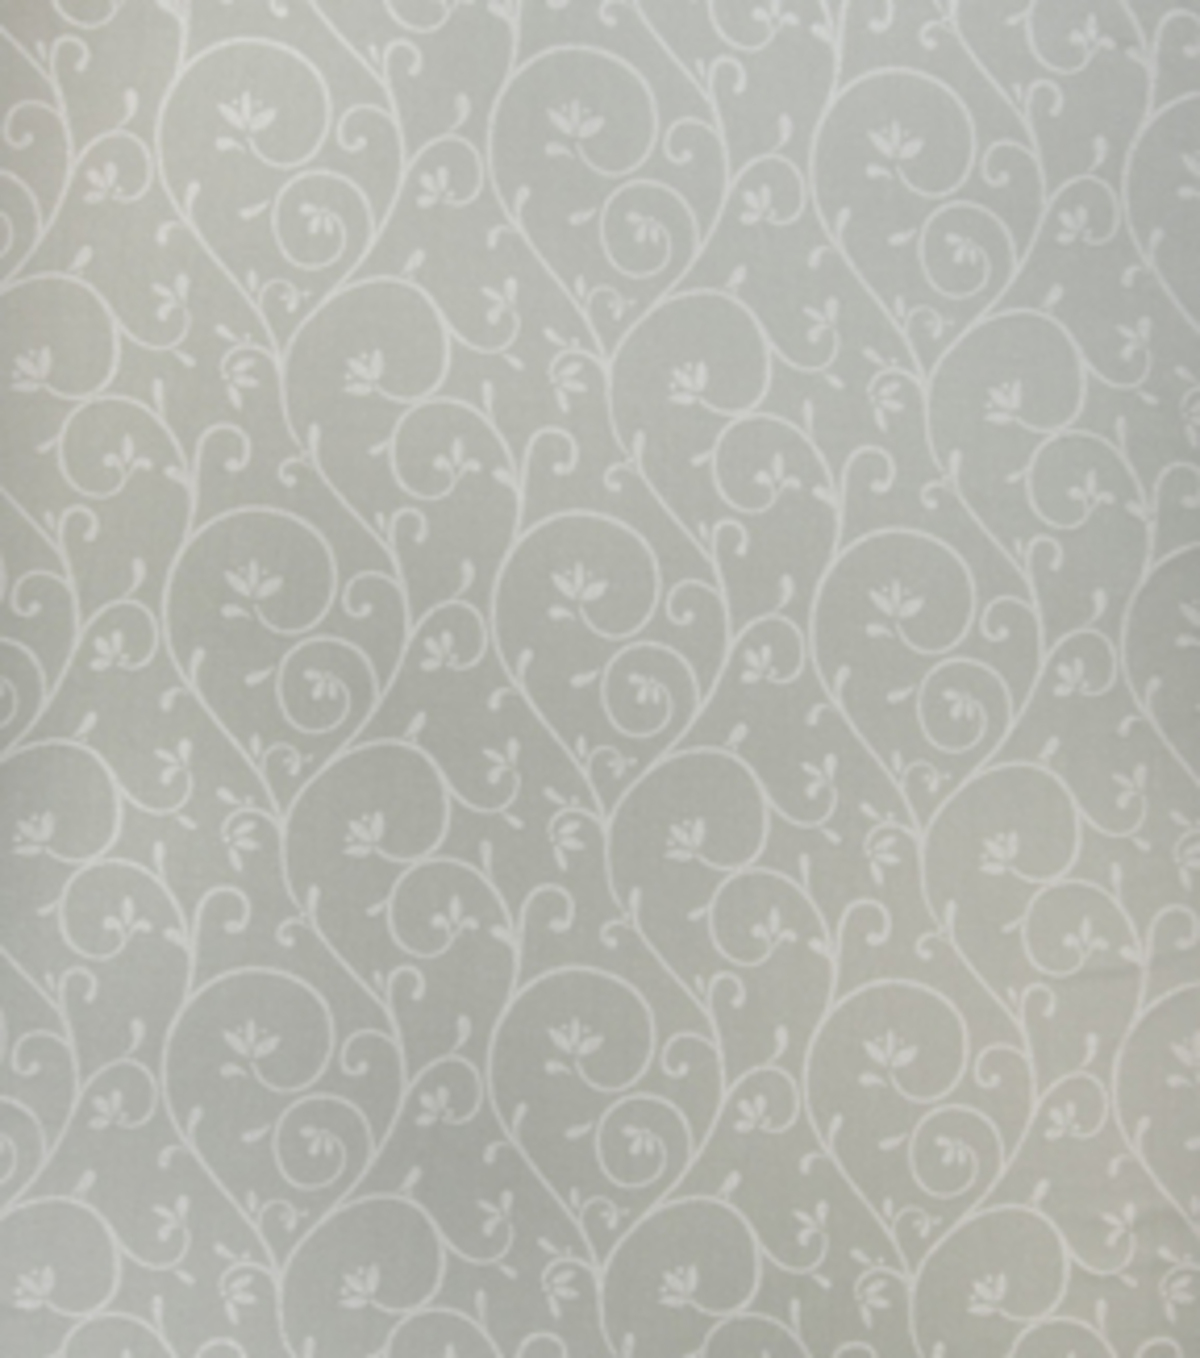 Home Decor 8\u0022x8\u0022 Fabric Swatch-Print Fabric Eaton Square Adina Celadon